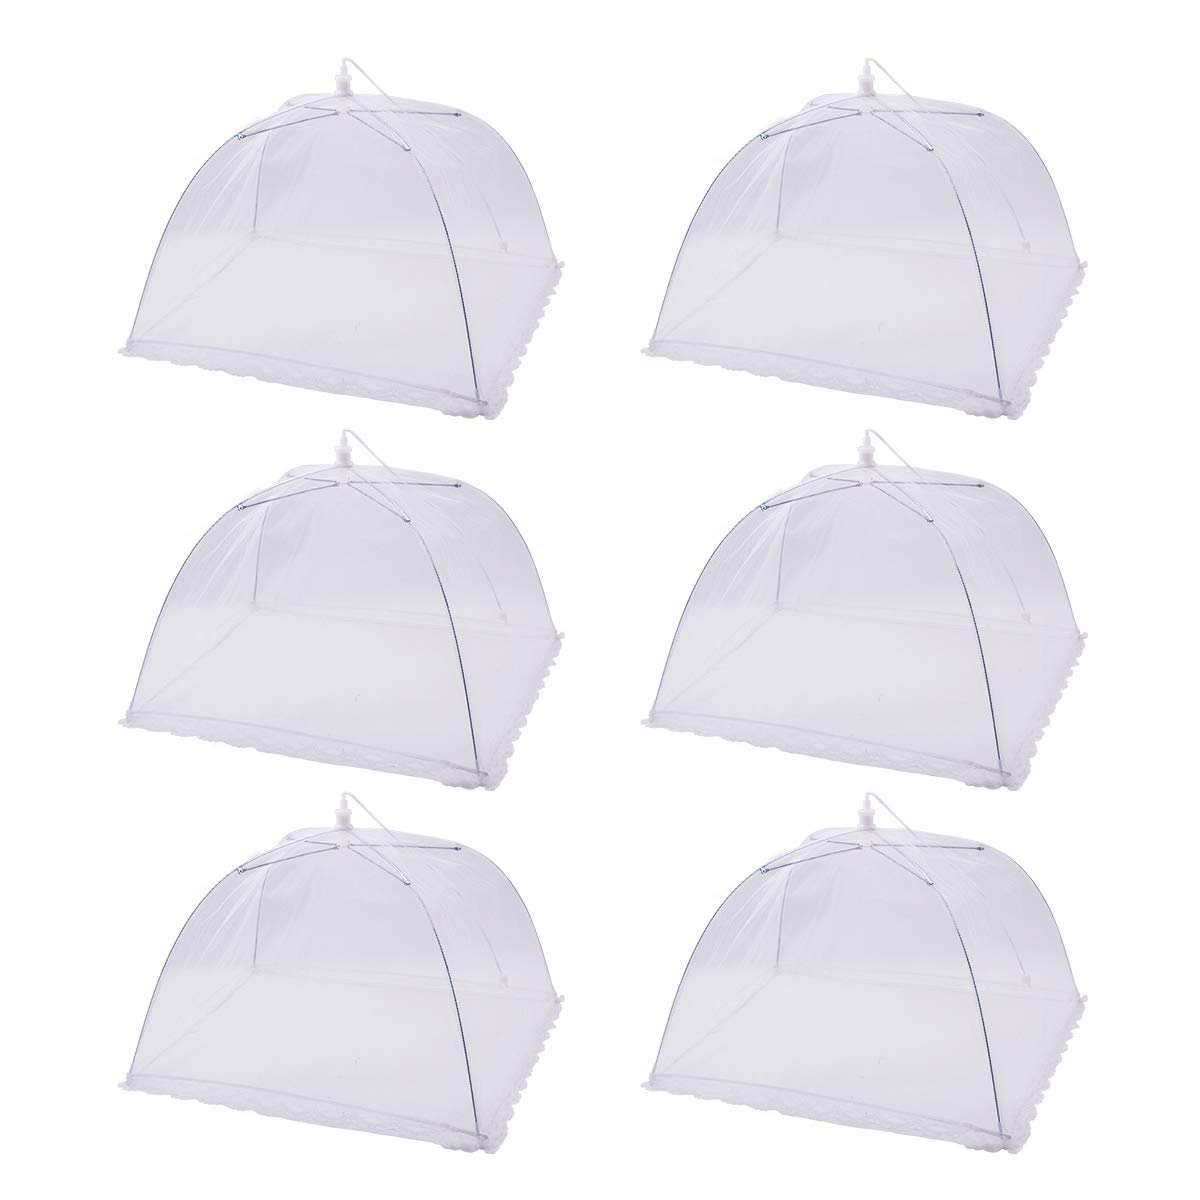 Pop-Up Mesh Food Covers Tent Umbrella For Outdoors Food Cover Net Keep Out Flies Bugs Mosquitoes Ideal for Parties Picnics BBQ Reusable And Collapsible 17 x 17 Inches(6 Pack) Datong